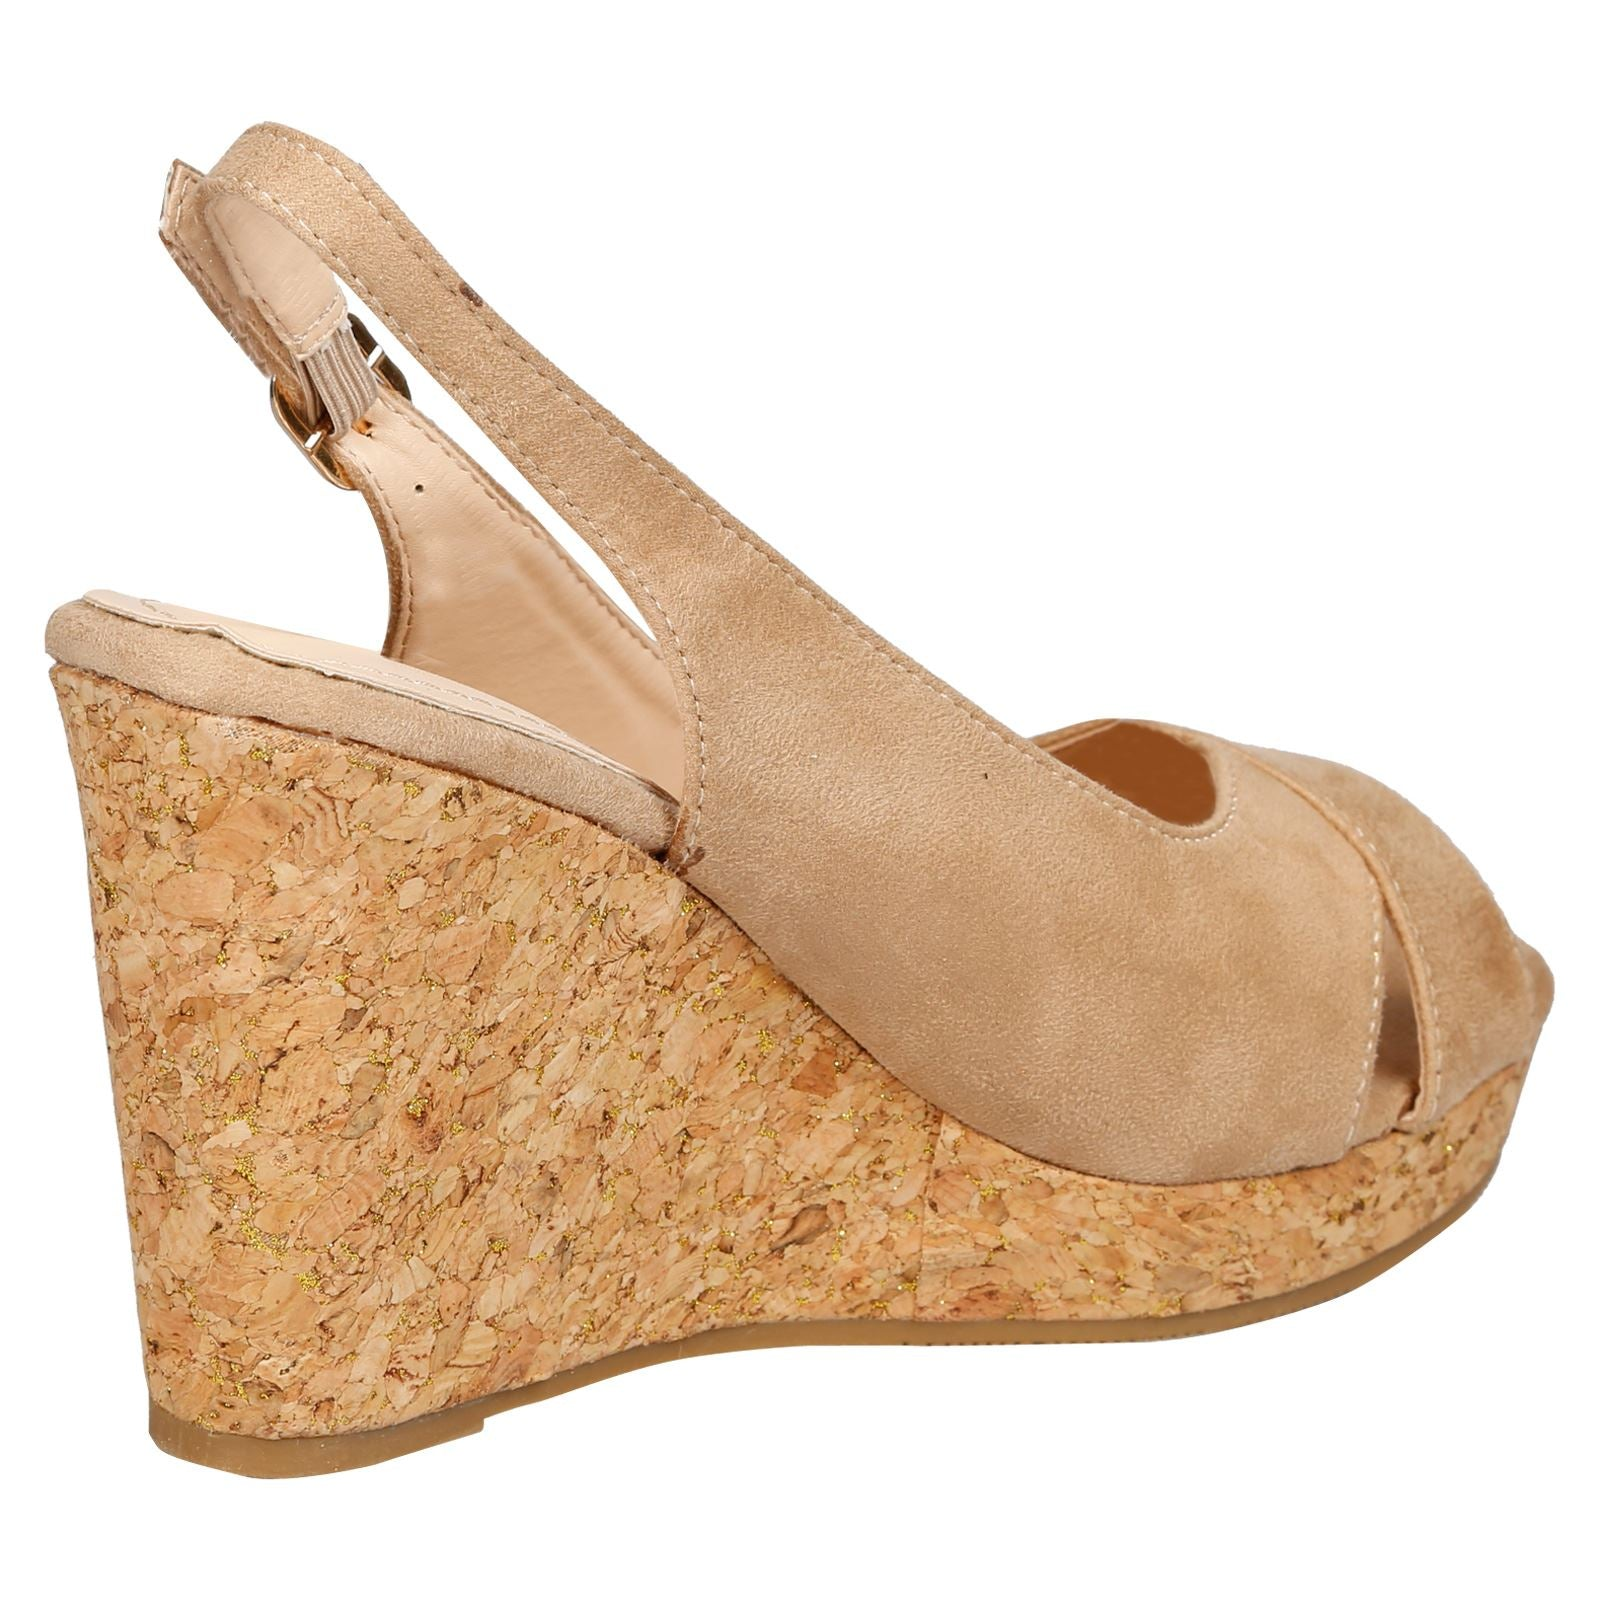 Dara Cork Sole Wedge Heel Slingback Sandals in Beige Faux Suede